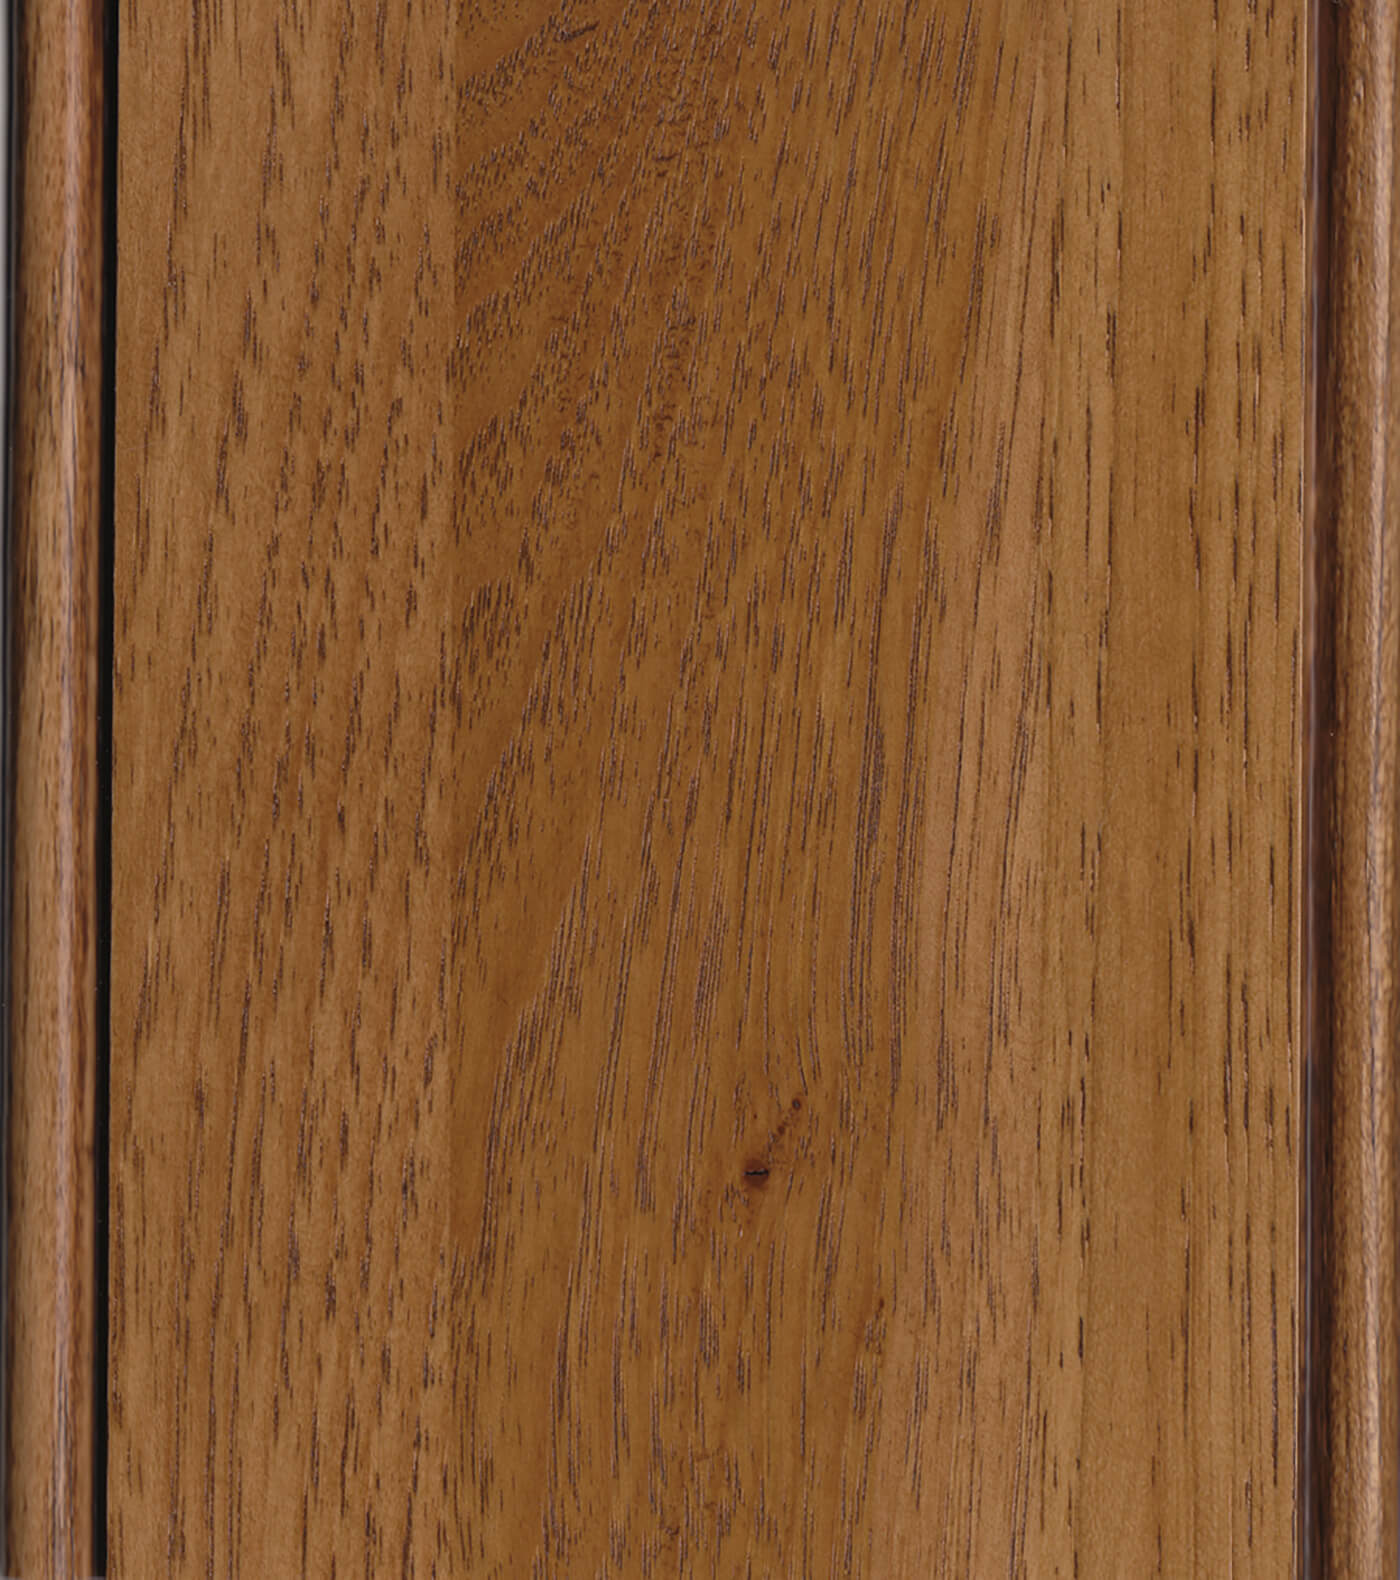 Clove Stain on Hickory or Rustic Hickory